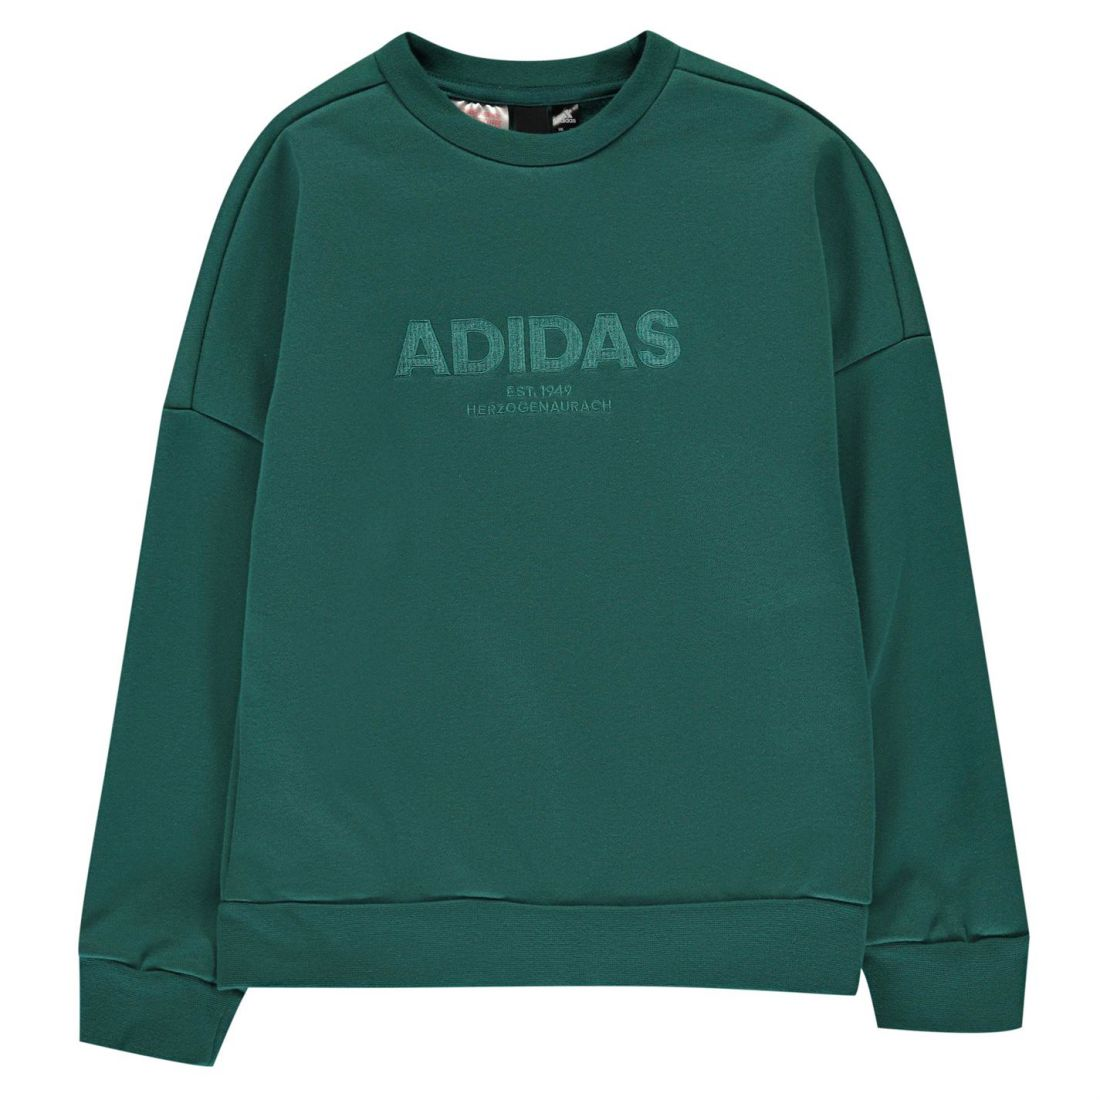 2db78eb7b1c9 Image is loading adidas-ESS-AC-Crw-Sw-JB83-Childrens-Crew-